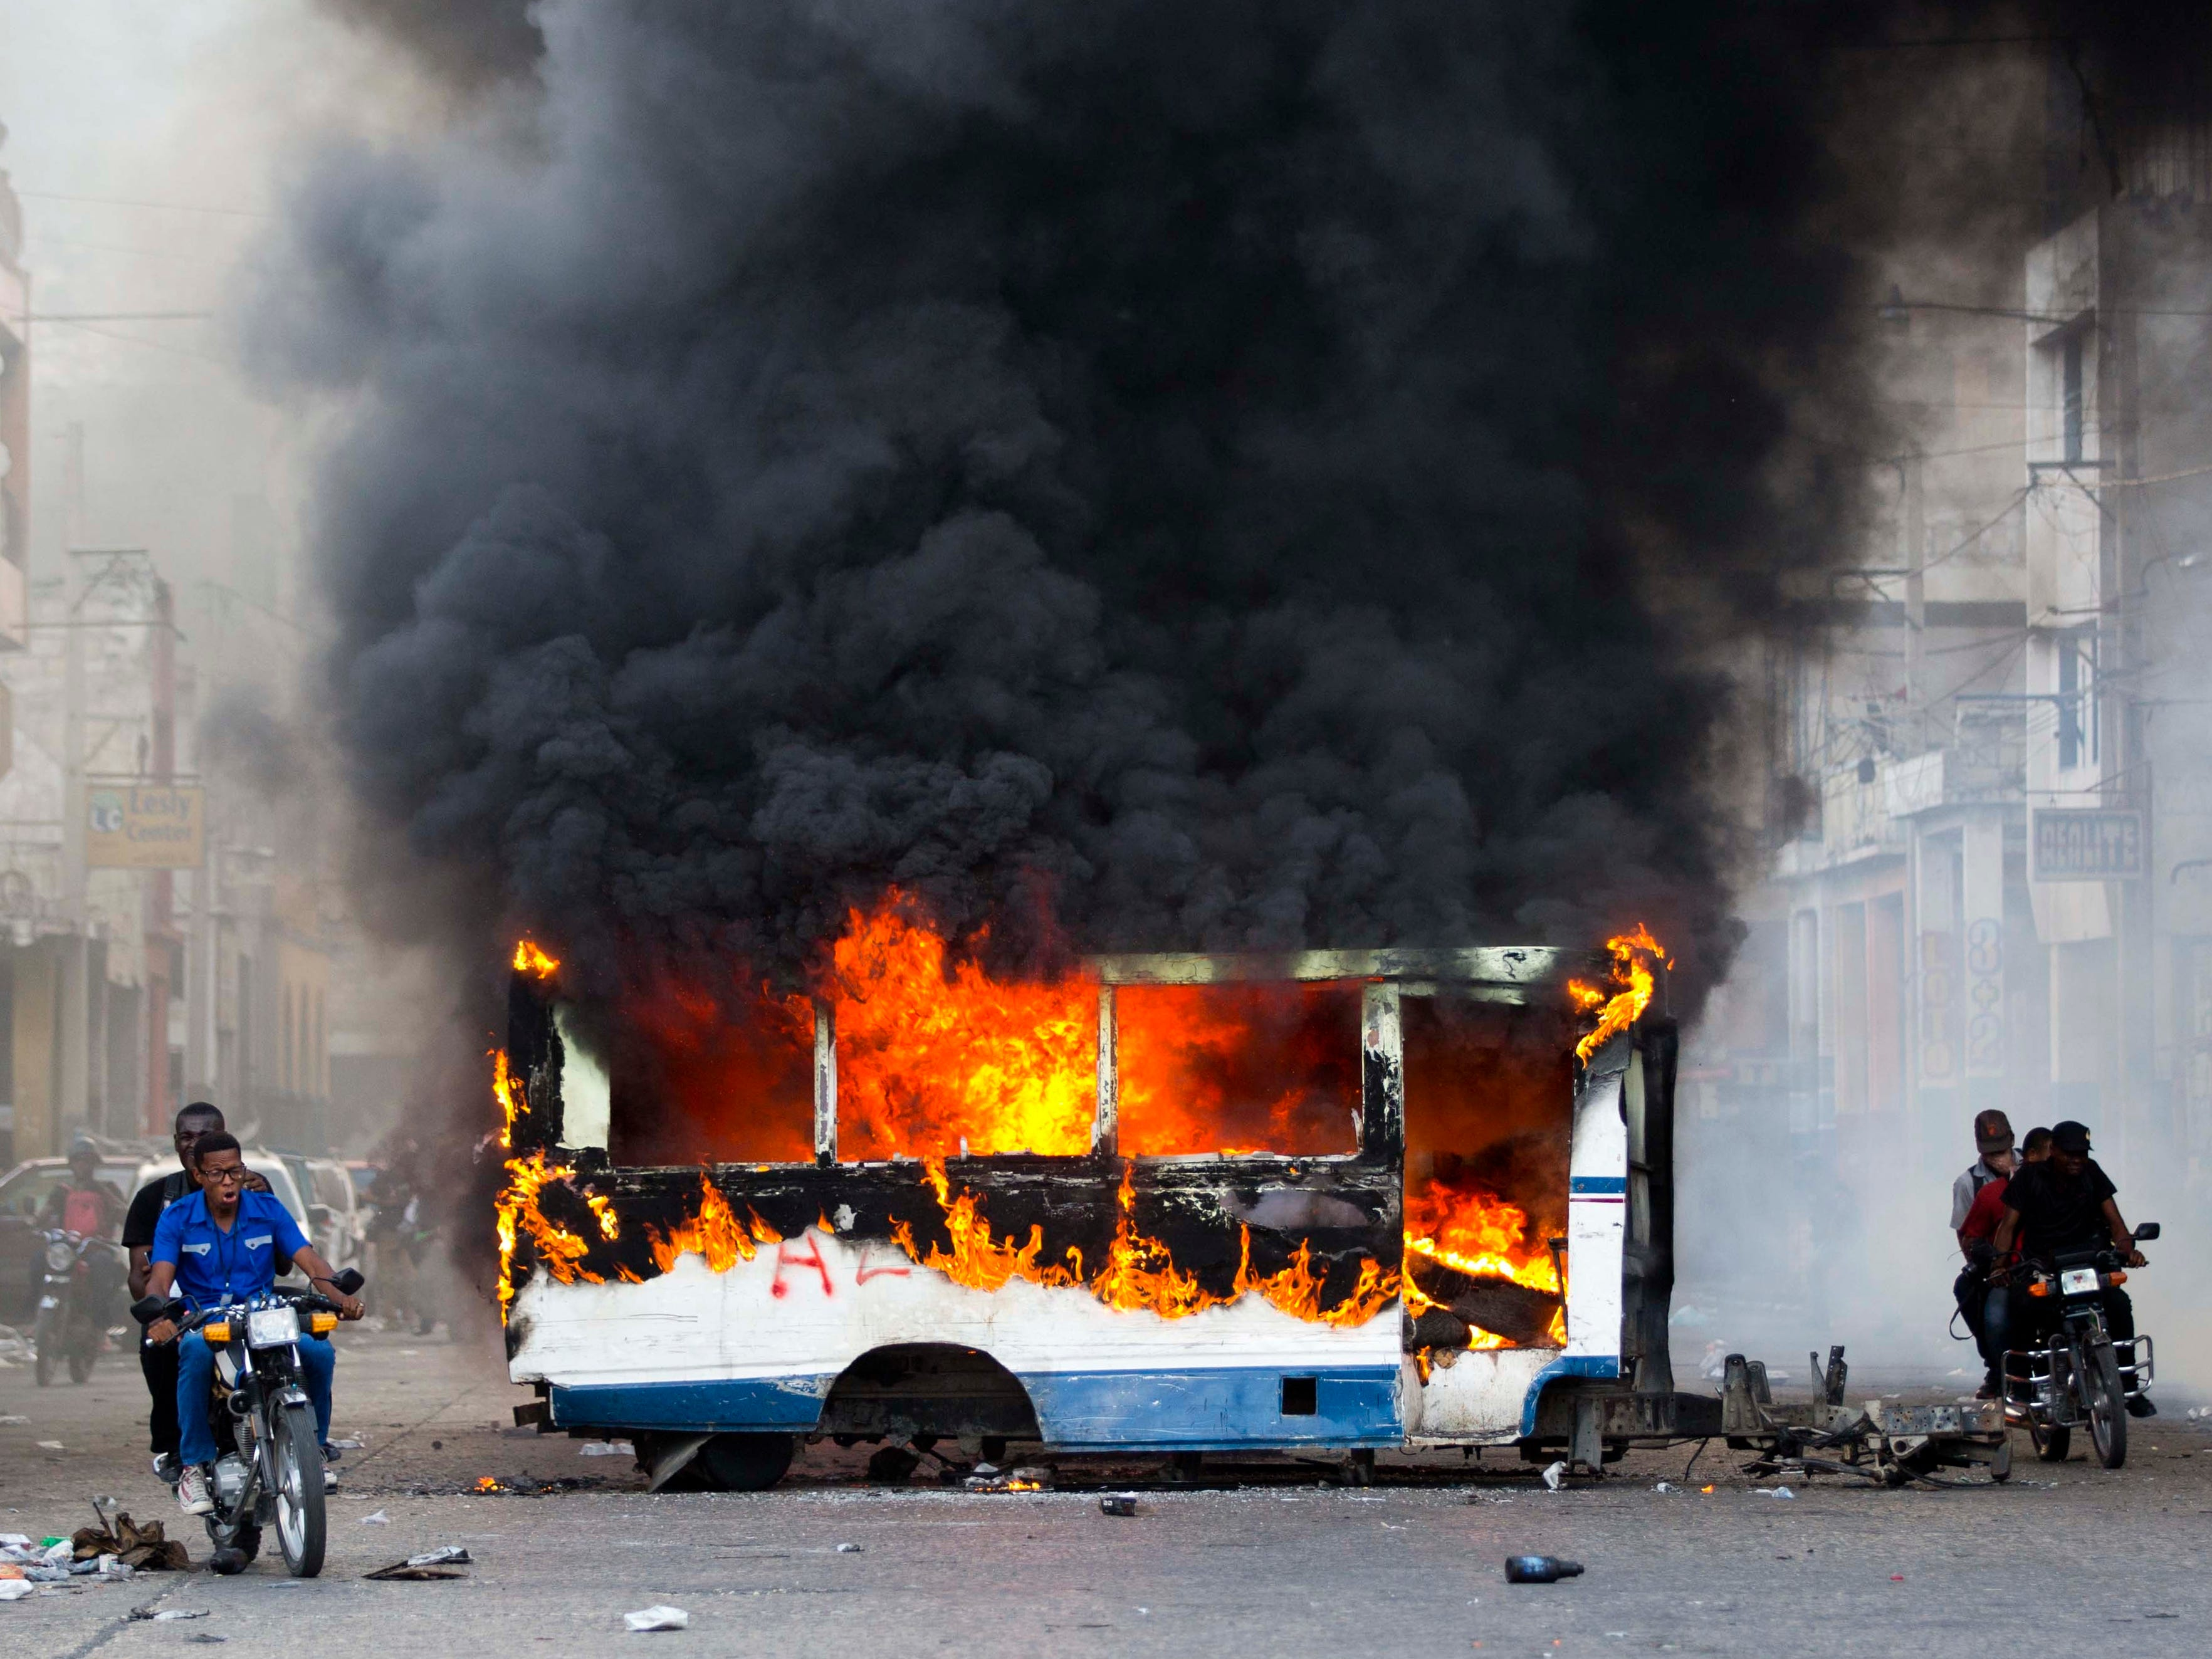 Motorcyclists pass a burning bus, set fire by opposition protesters demanding to know how Petro Caribe funds have been used by the current and past administrations, on the sidelines of events marking the 215th anniversary of independence Battle of Vertieres in Port-au-Prince, Haiti, Sunday, Nov. 18, 2018. Much of the financial support to help Haiti rebuild after the 2010 earthquake comes from Venezuela's Petro Caribe fund, a 2005 pact that gives suppliers below-market financing for oil and is under the control of the central government.